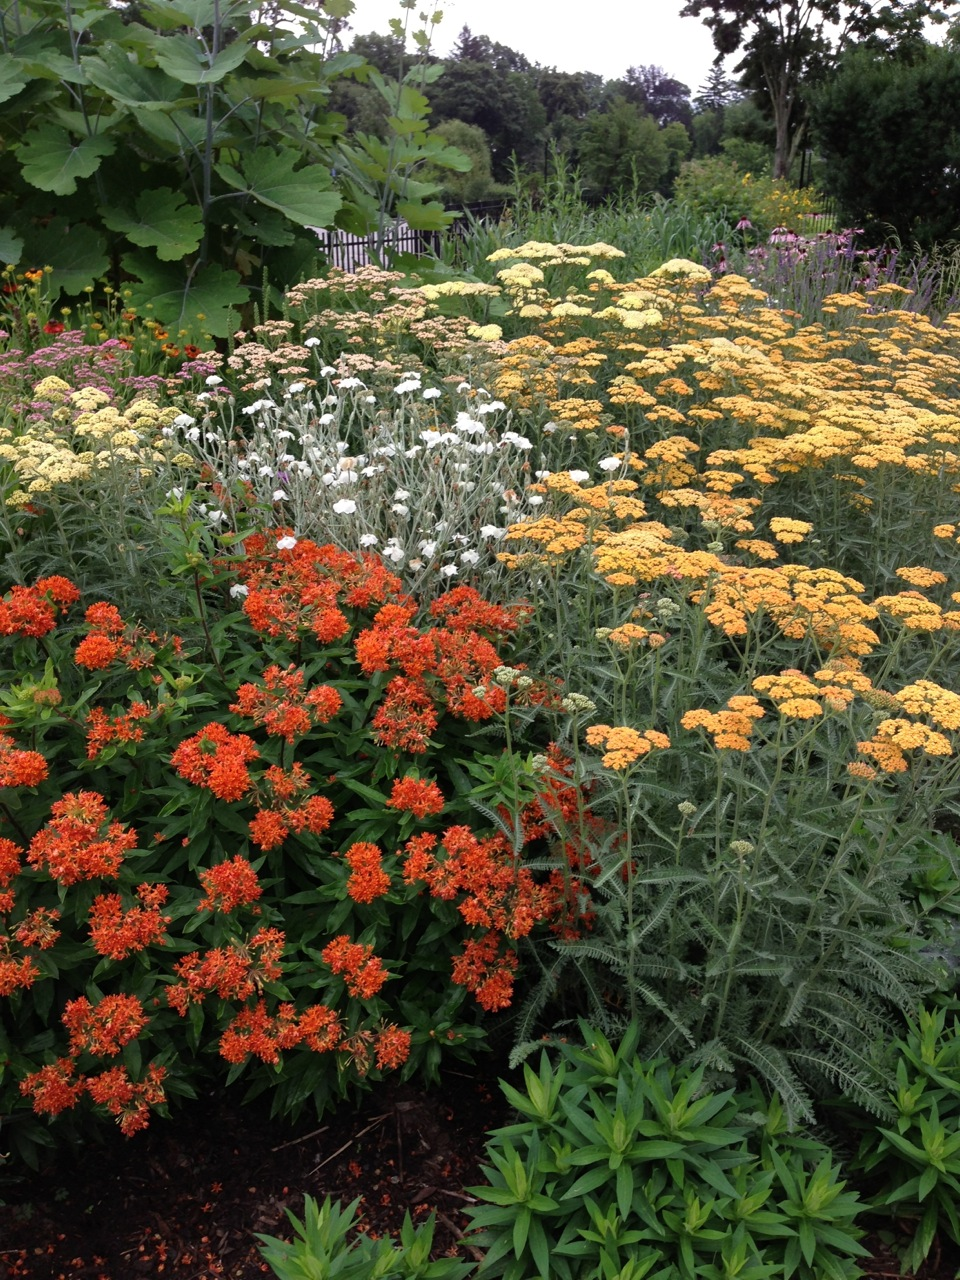 Summer Garden perennial display of asclepsias (butterfly weed), macleaya (plume poppy), yarrow, rose campion